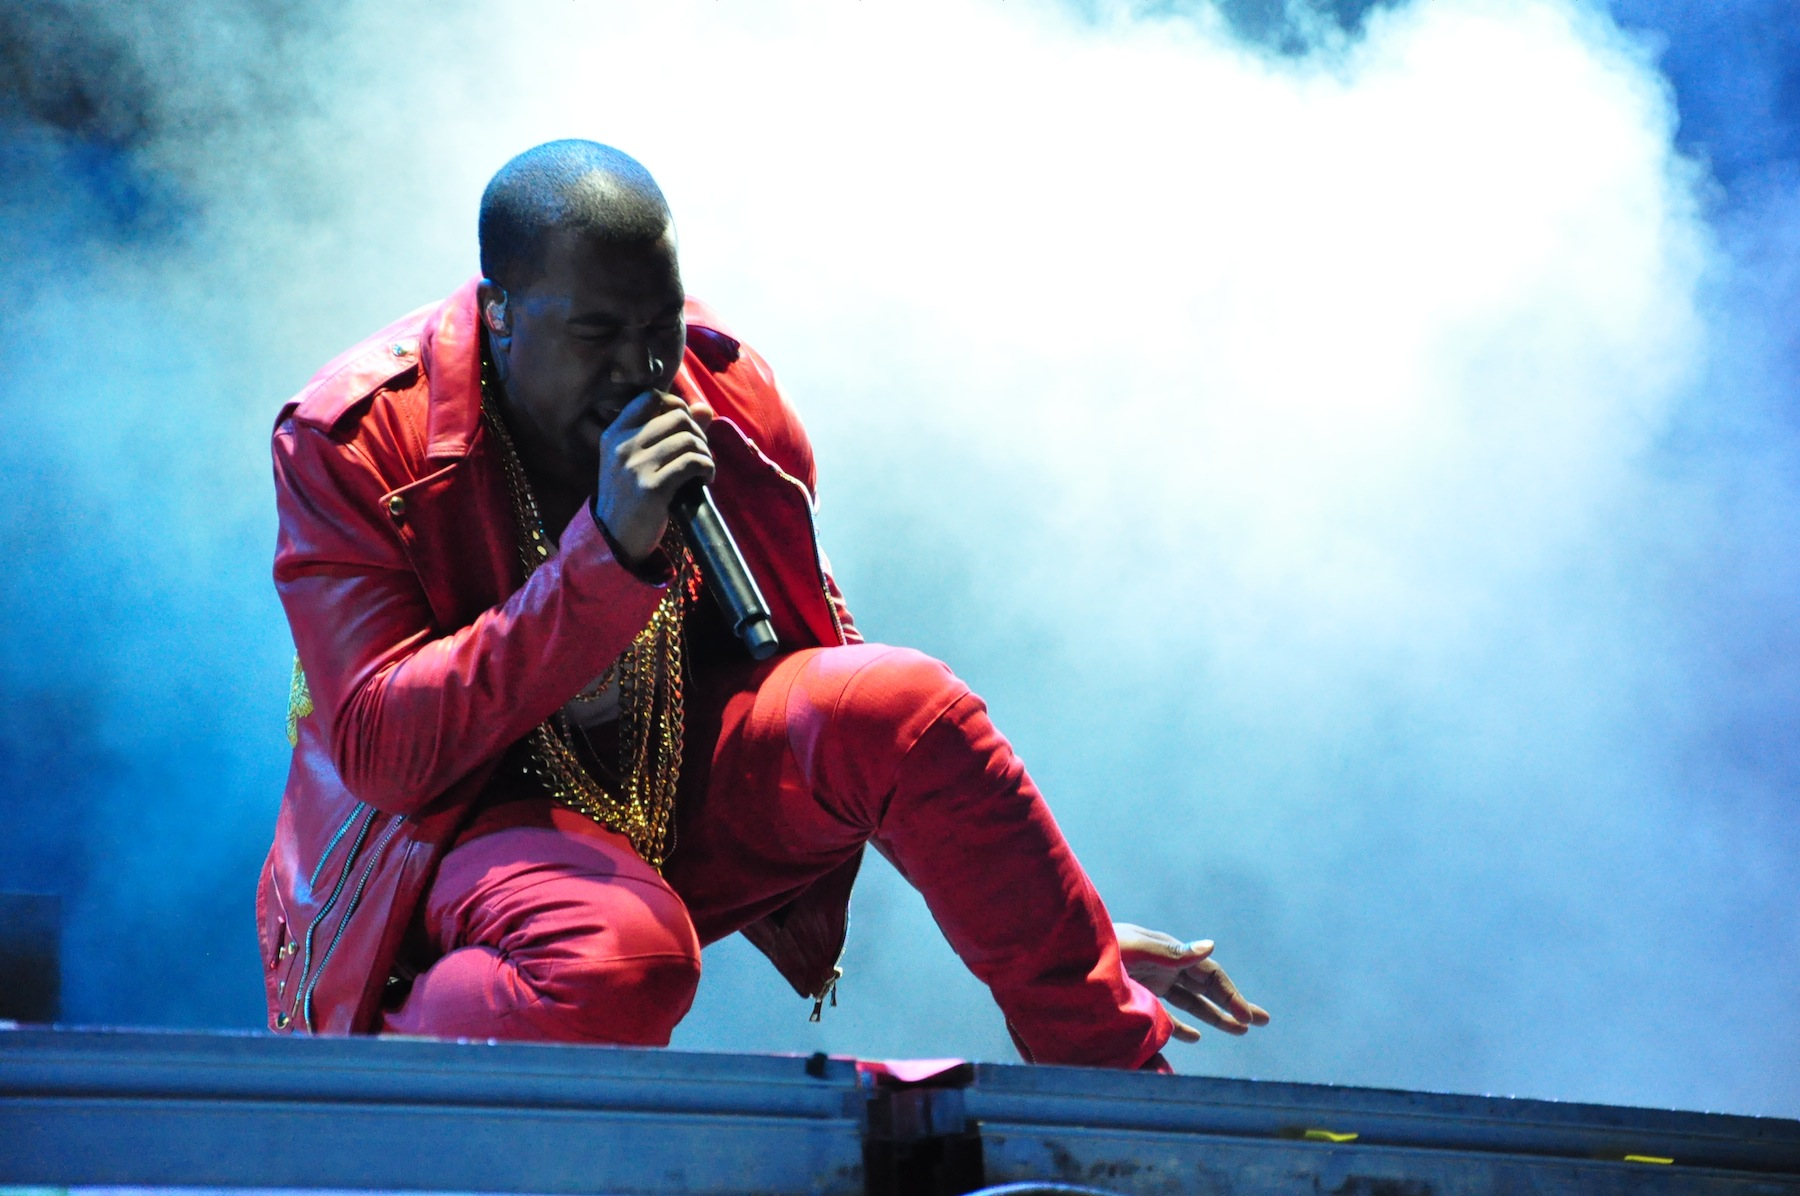 Kanye West Is Now Getting Sued Over His Latest Album kanye2